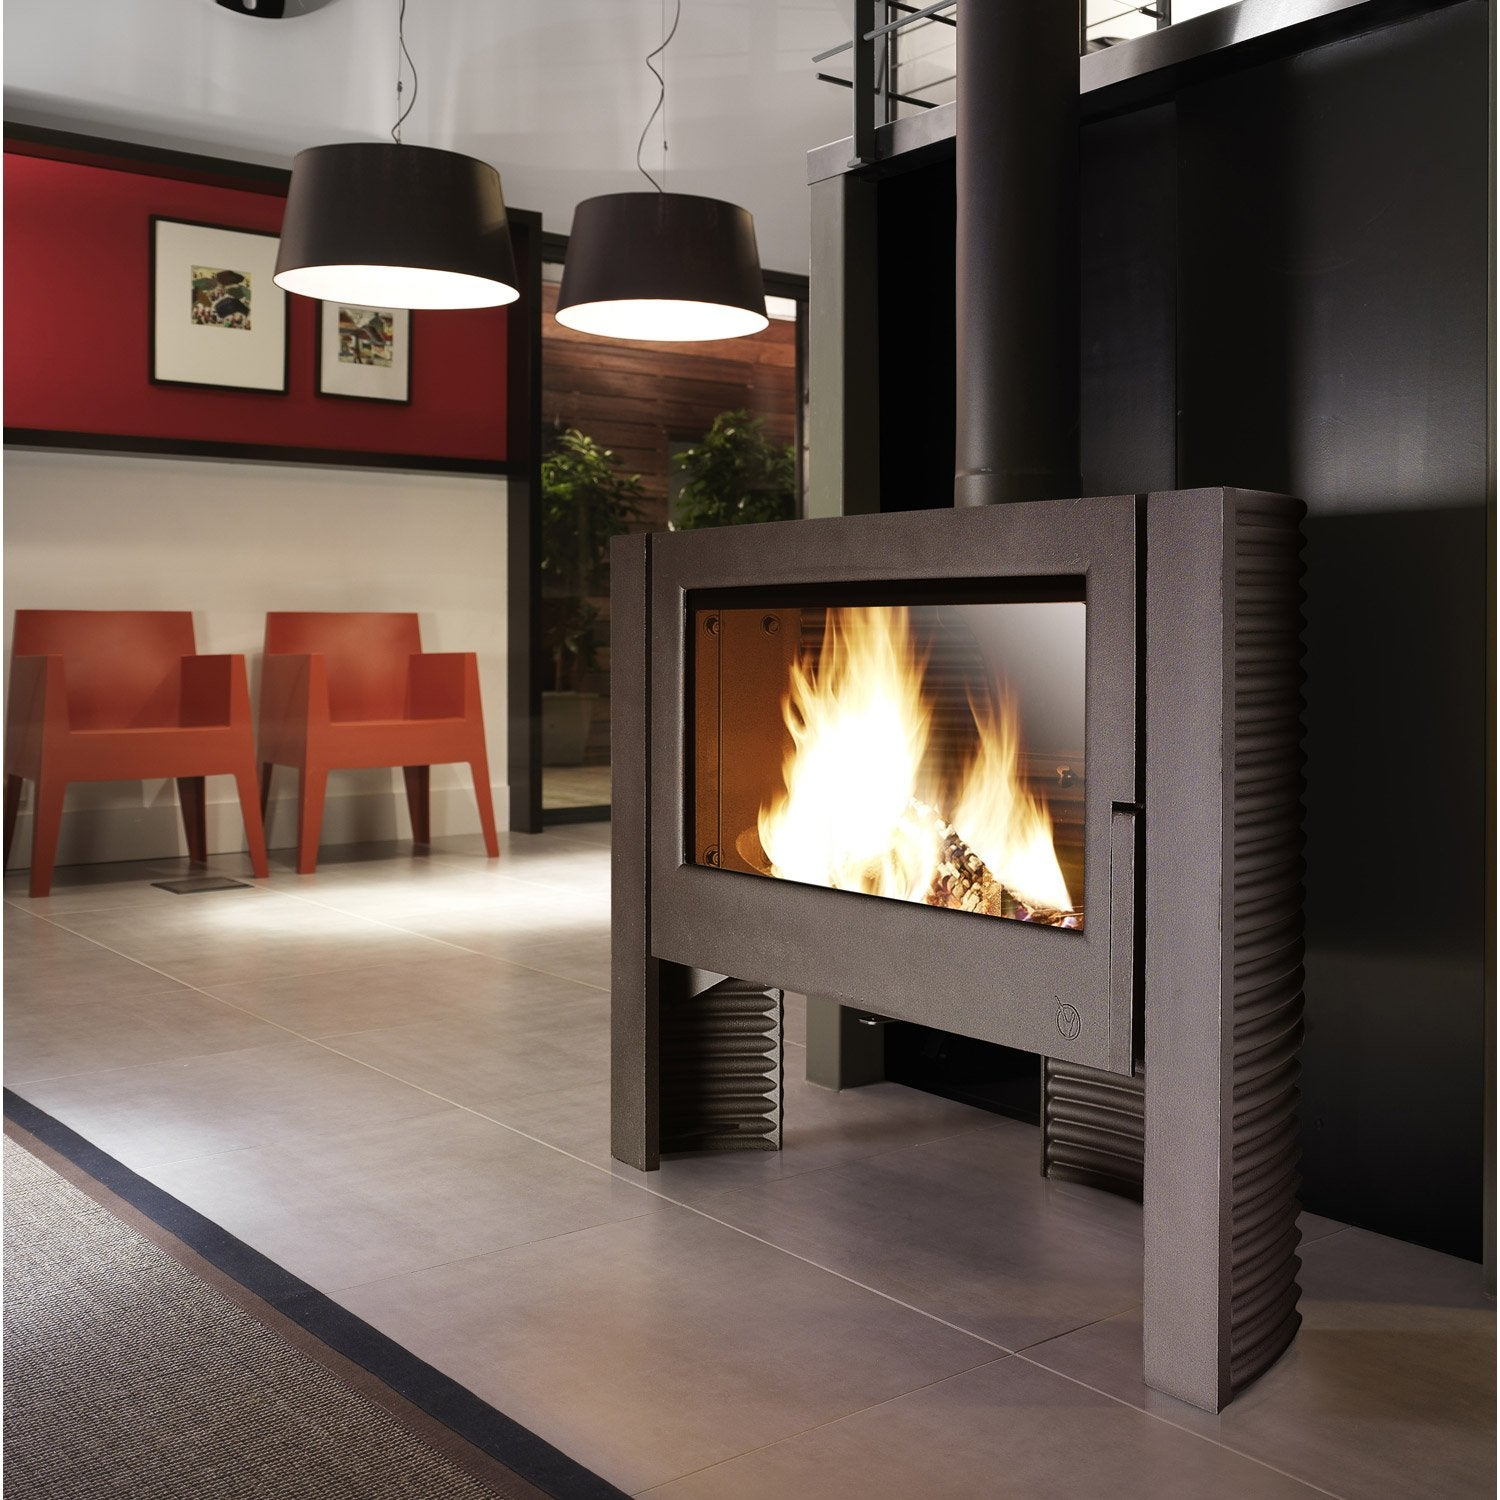 Po Le Bois Invicta Itaya Anthracite 6110 44 12 Kw Leroy Merlin # Amenagement Poele Avec Tv